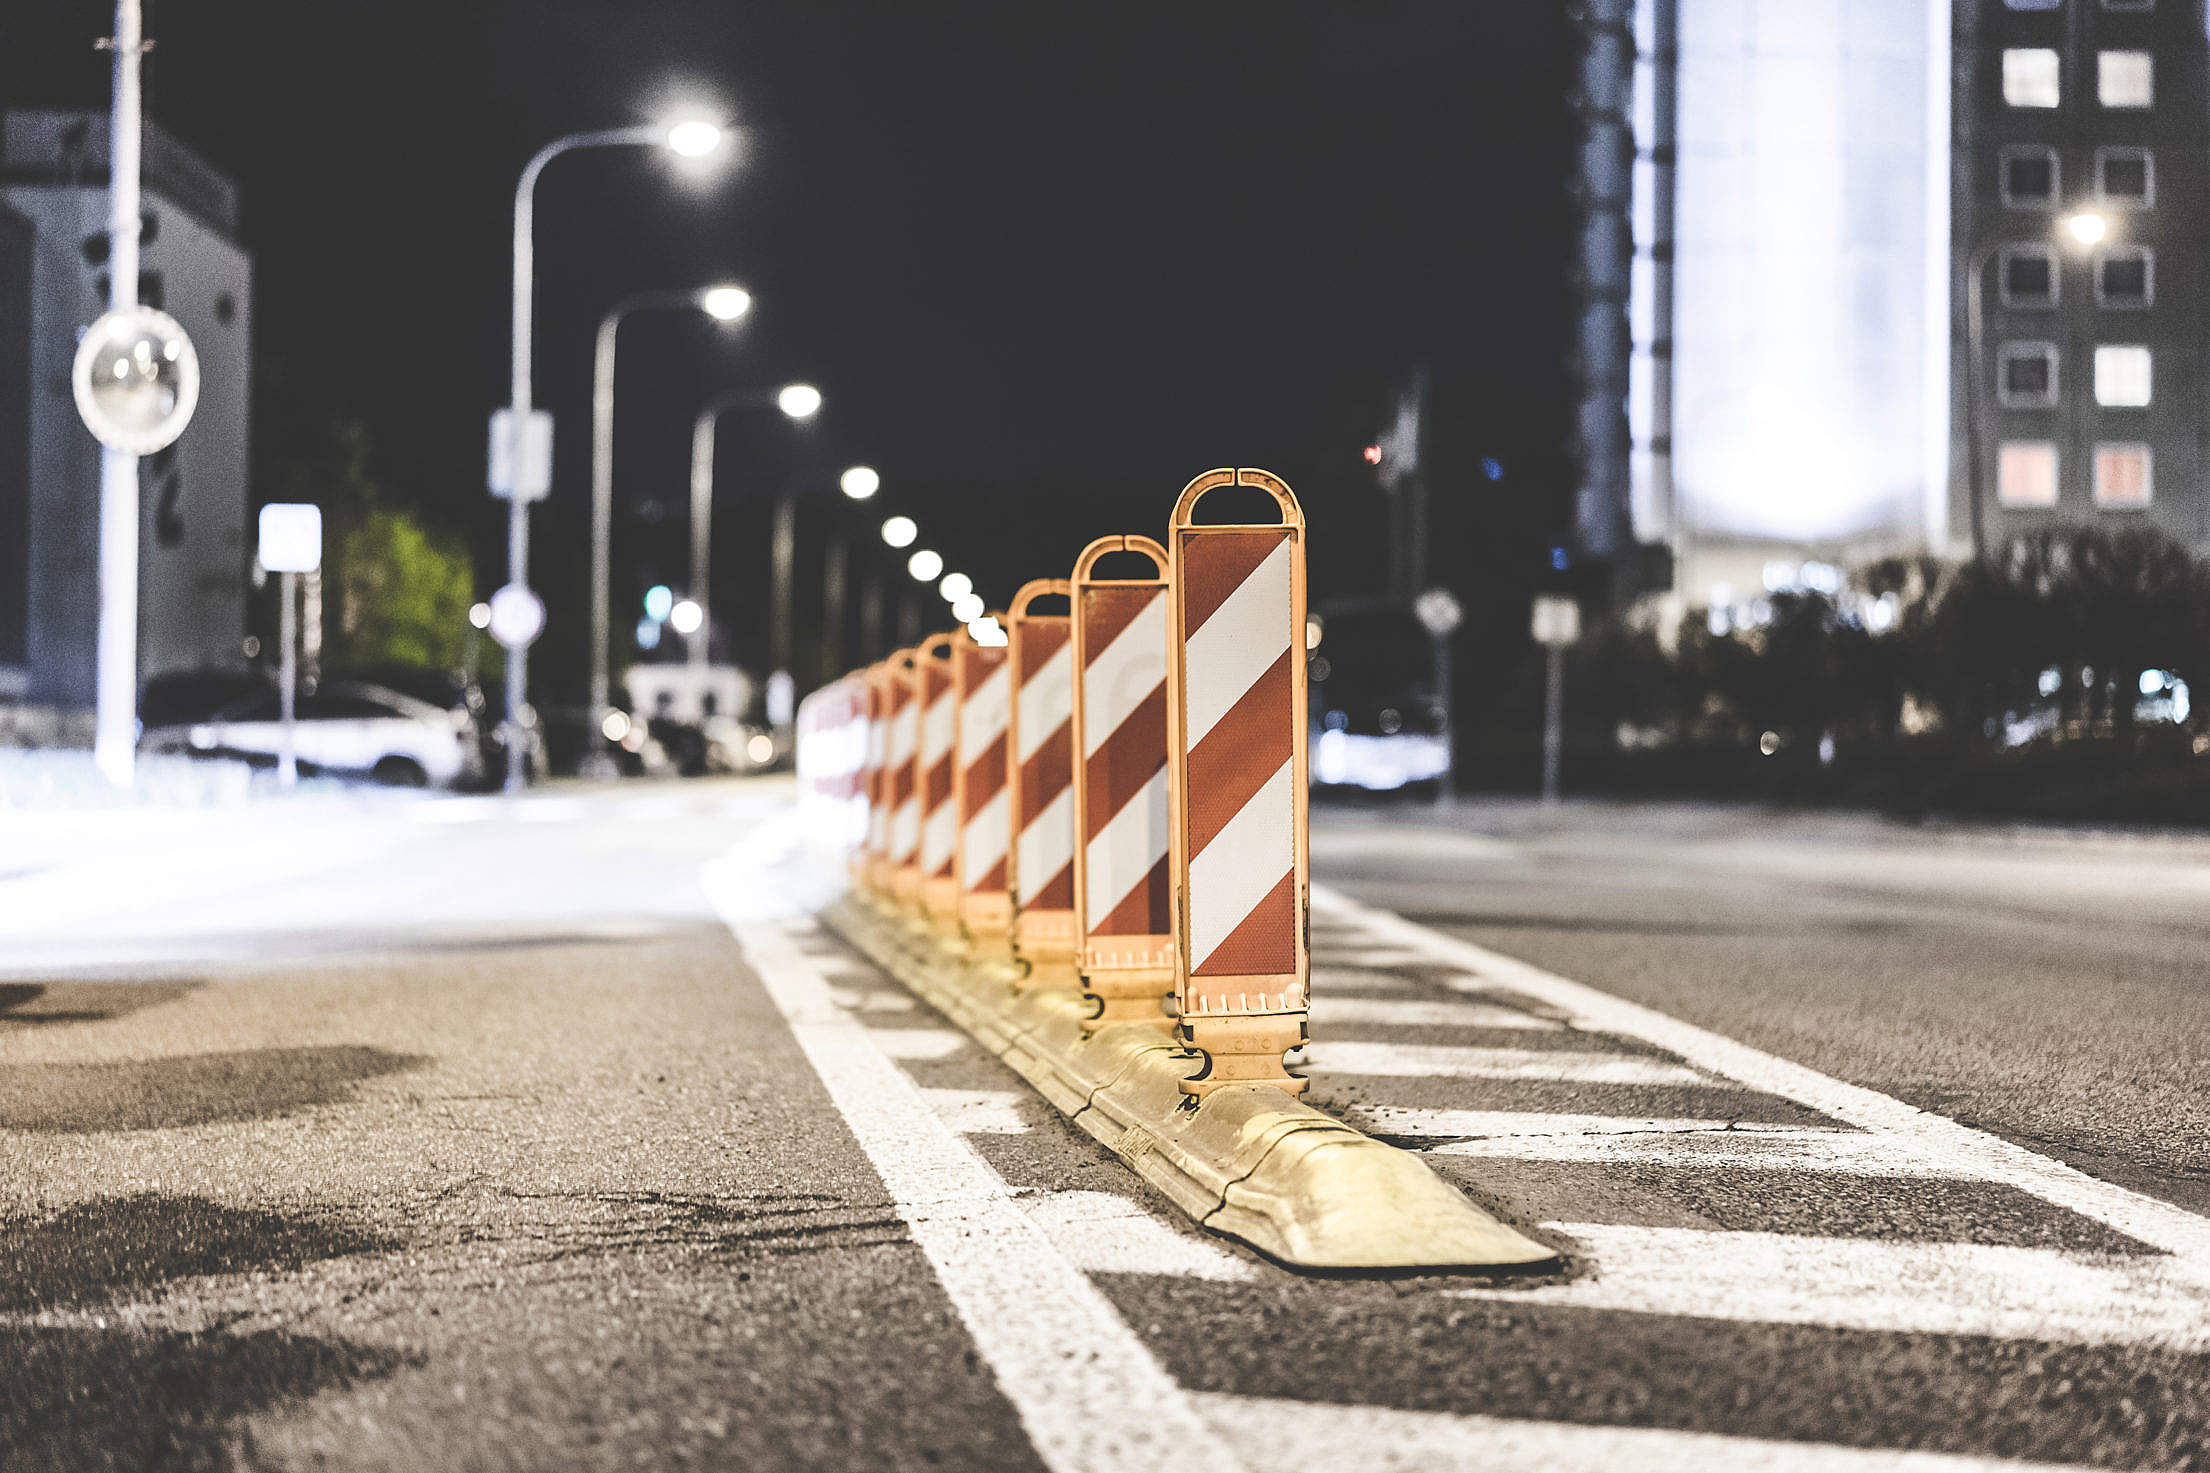 Safety Barriers on The Road Free Stock Photo